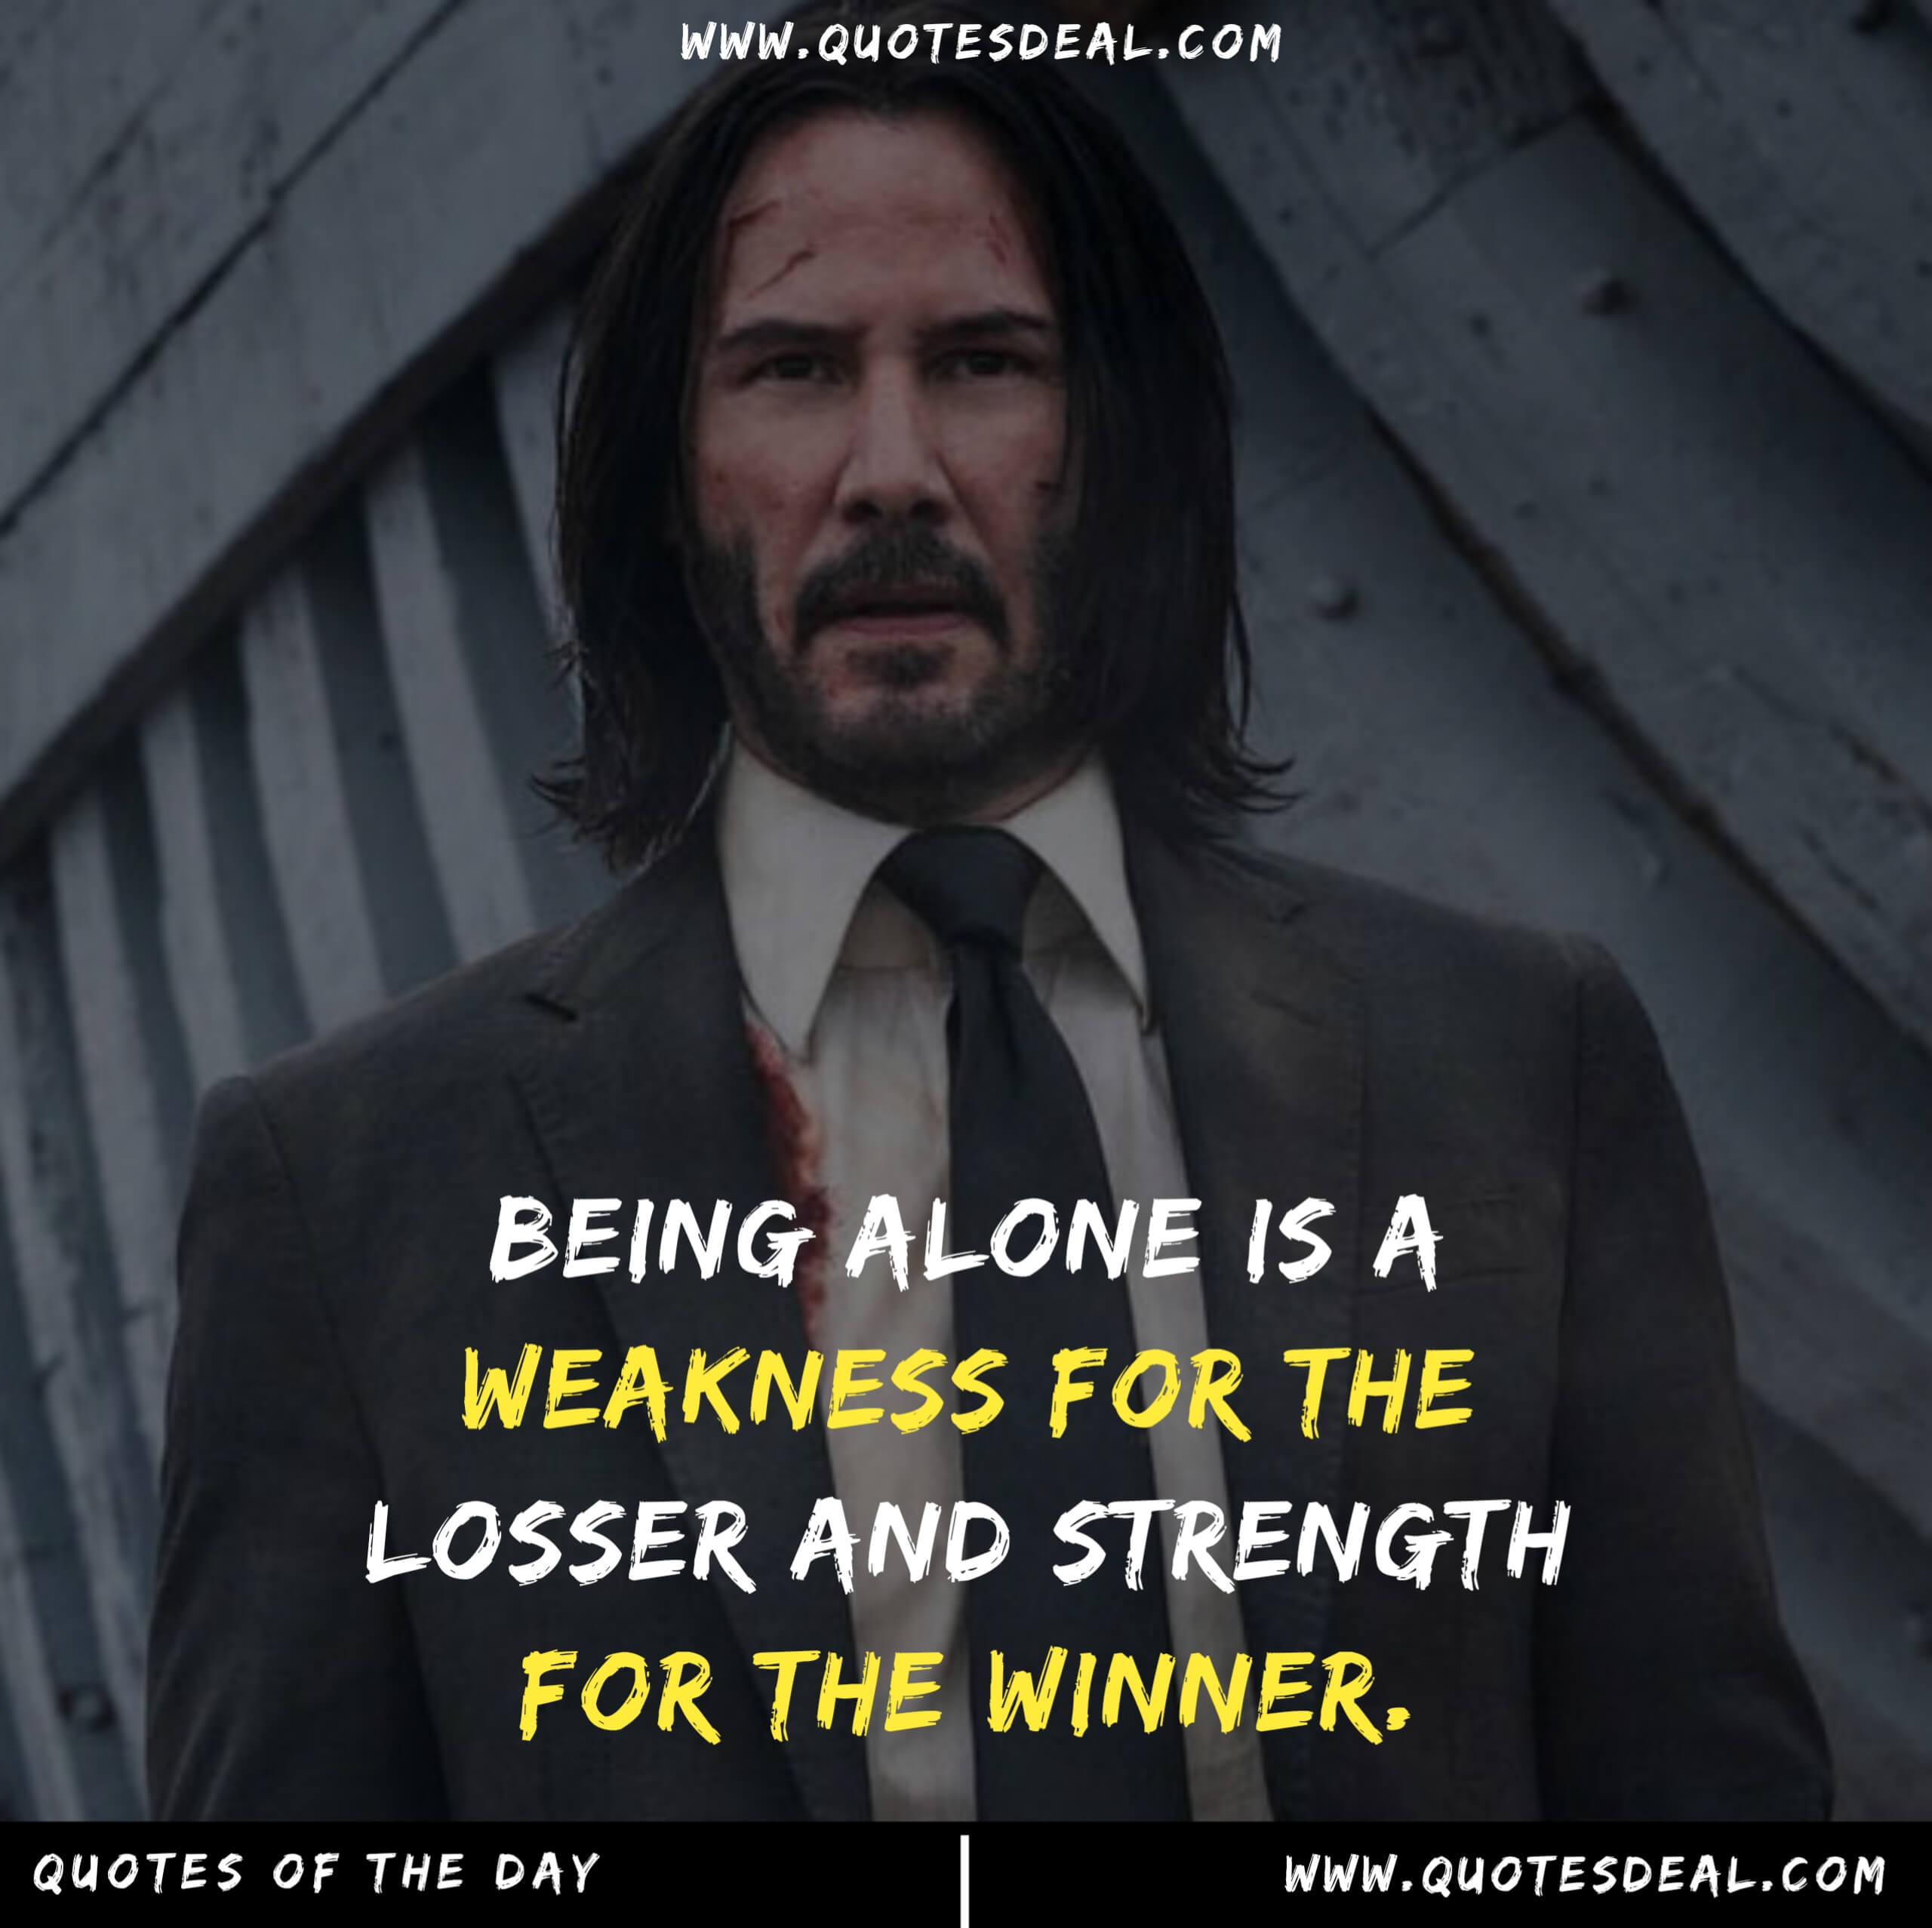 Being alone is a weakness